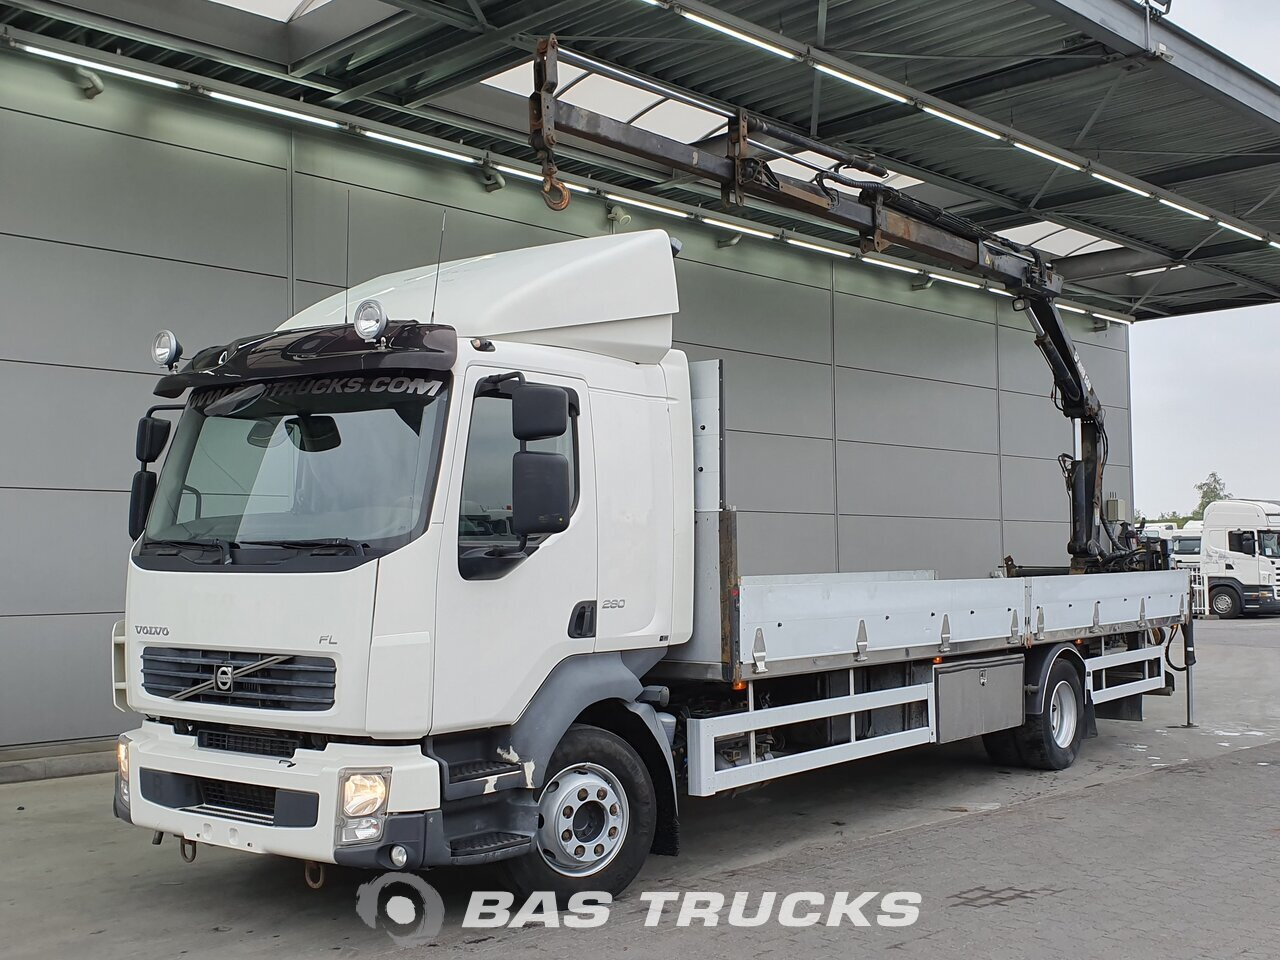 For sale at BAS Trucks: Volvo FL 280 4X2 10/2007